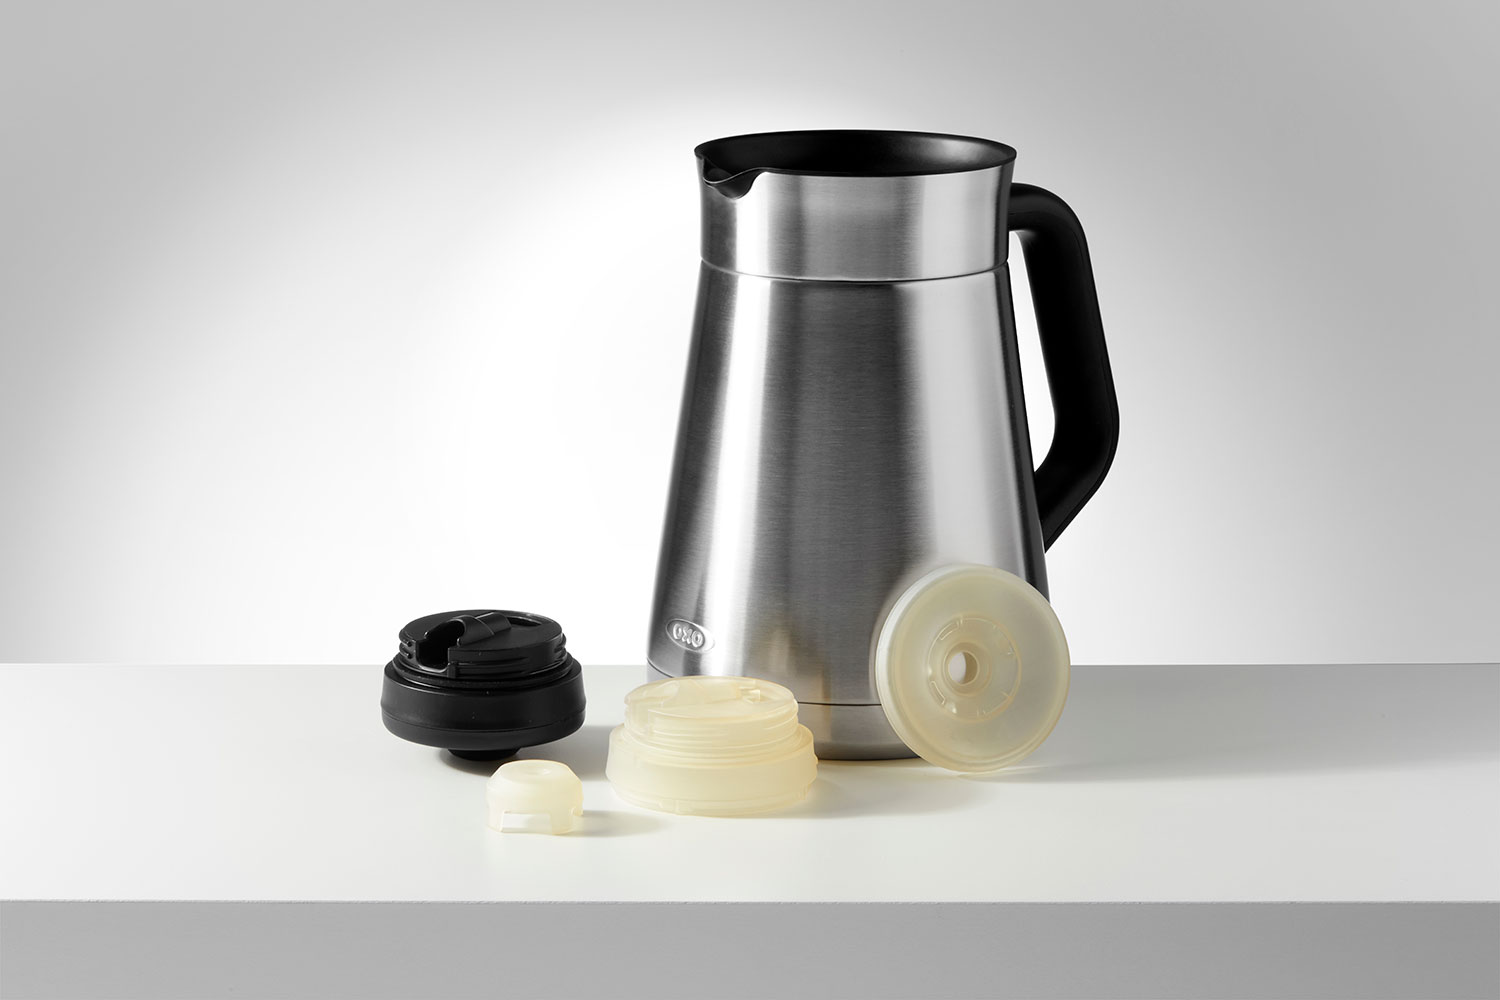 OXO's Barista Brain 9 Cup Coffee Maker and prototype parts printed in High Temp Resin